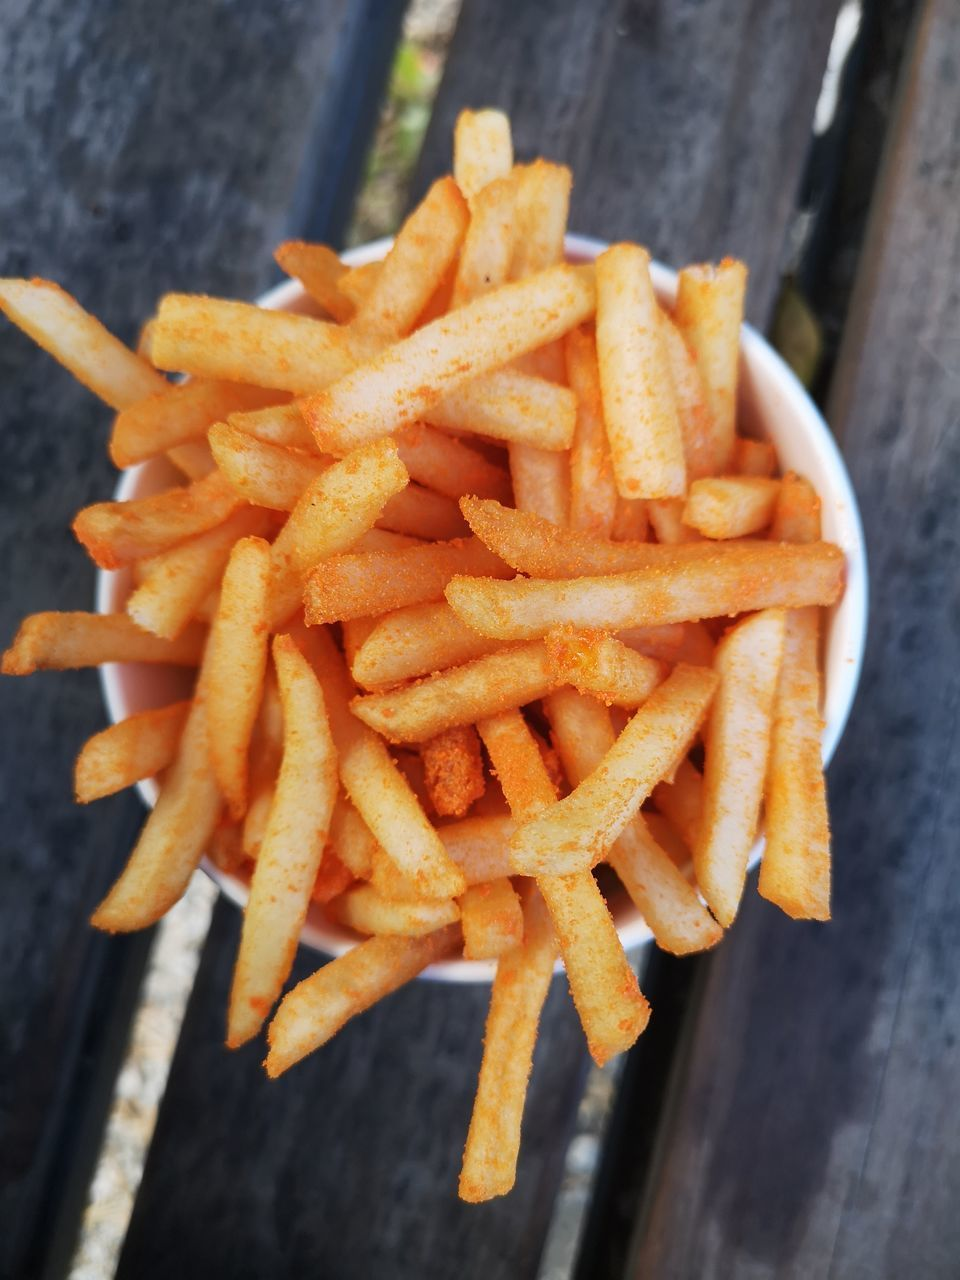 HIGH ANGLE VIEW OF FRIES ON PLATE